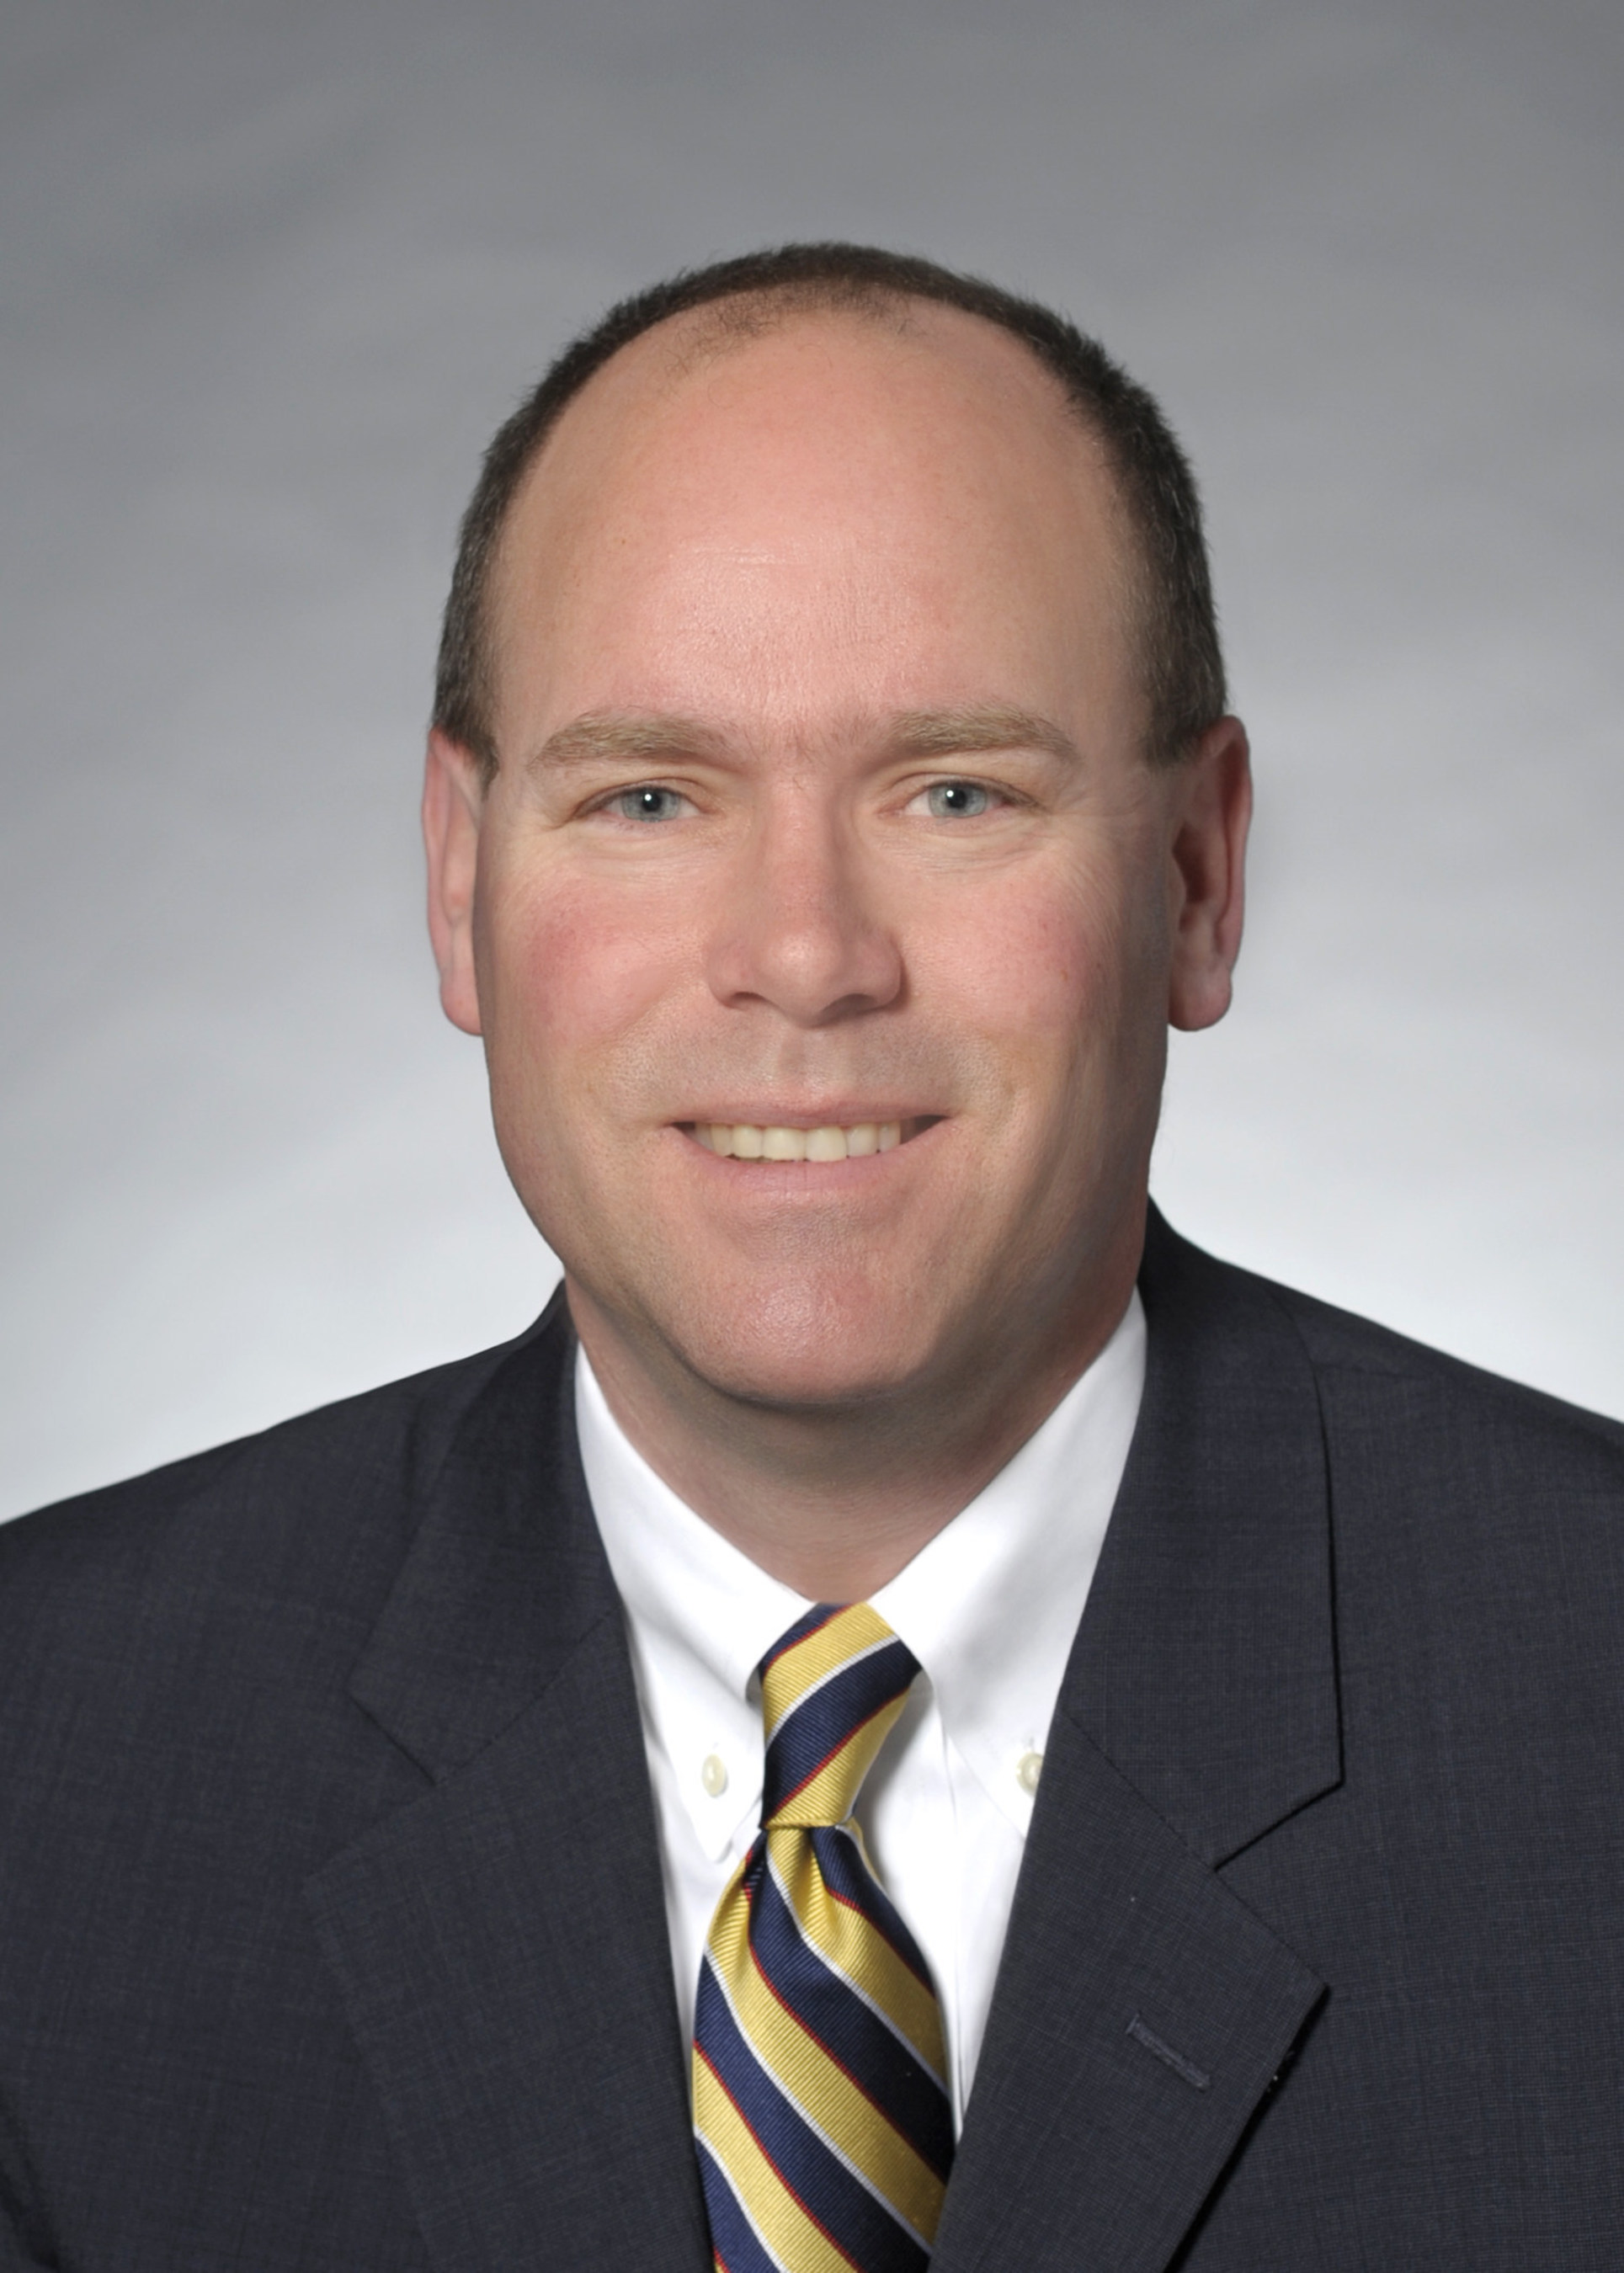 Christopher N. Skey joined Clark Hill's Environment, Energy & Natural Resources Practice Group.